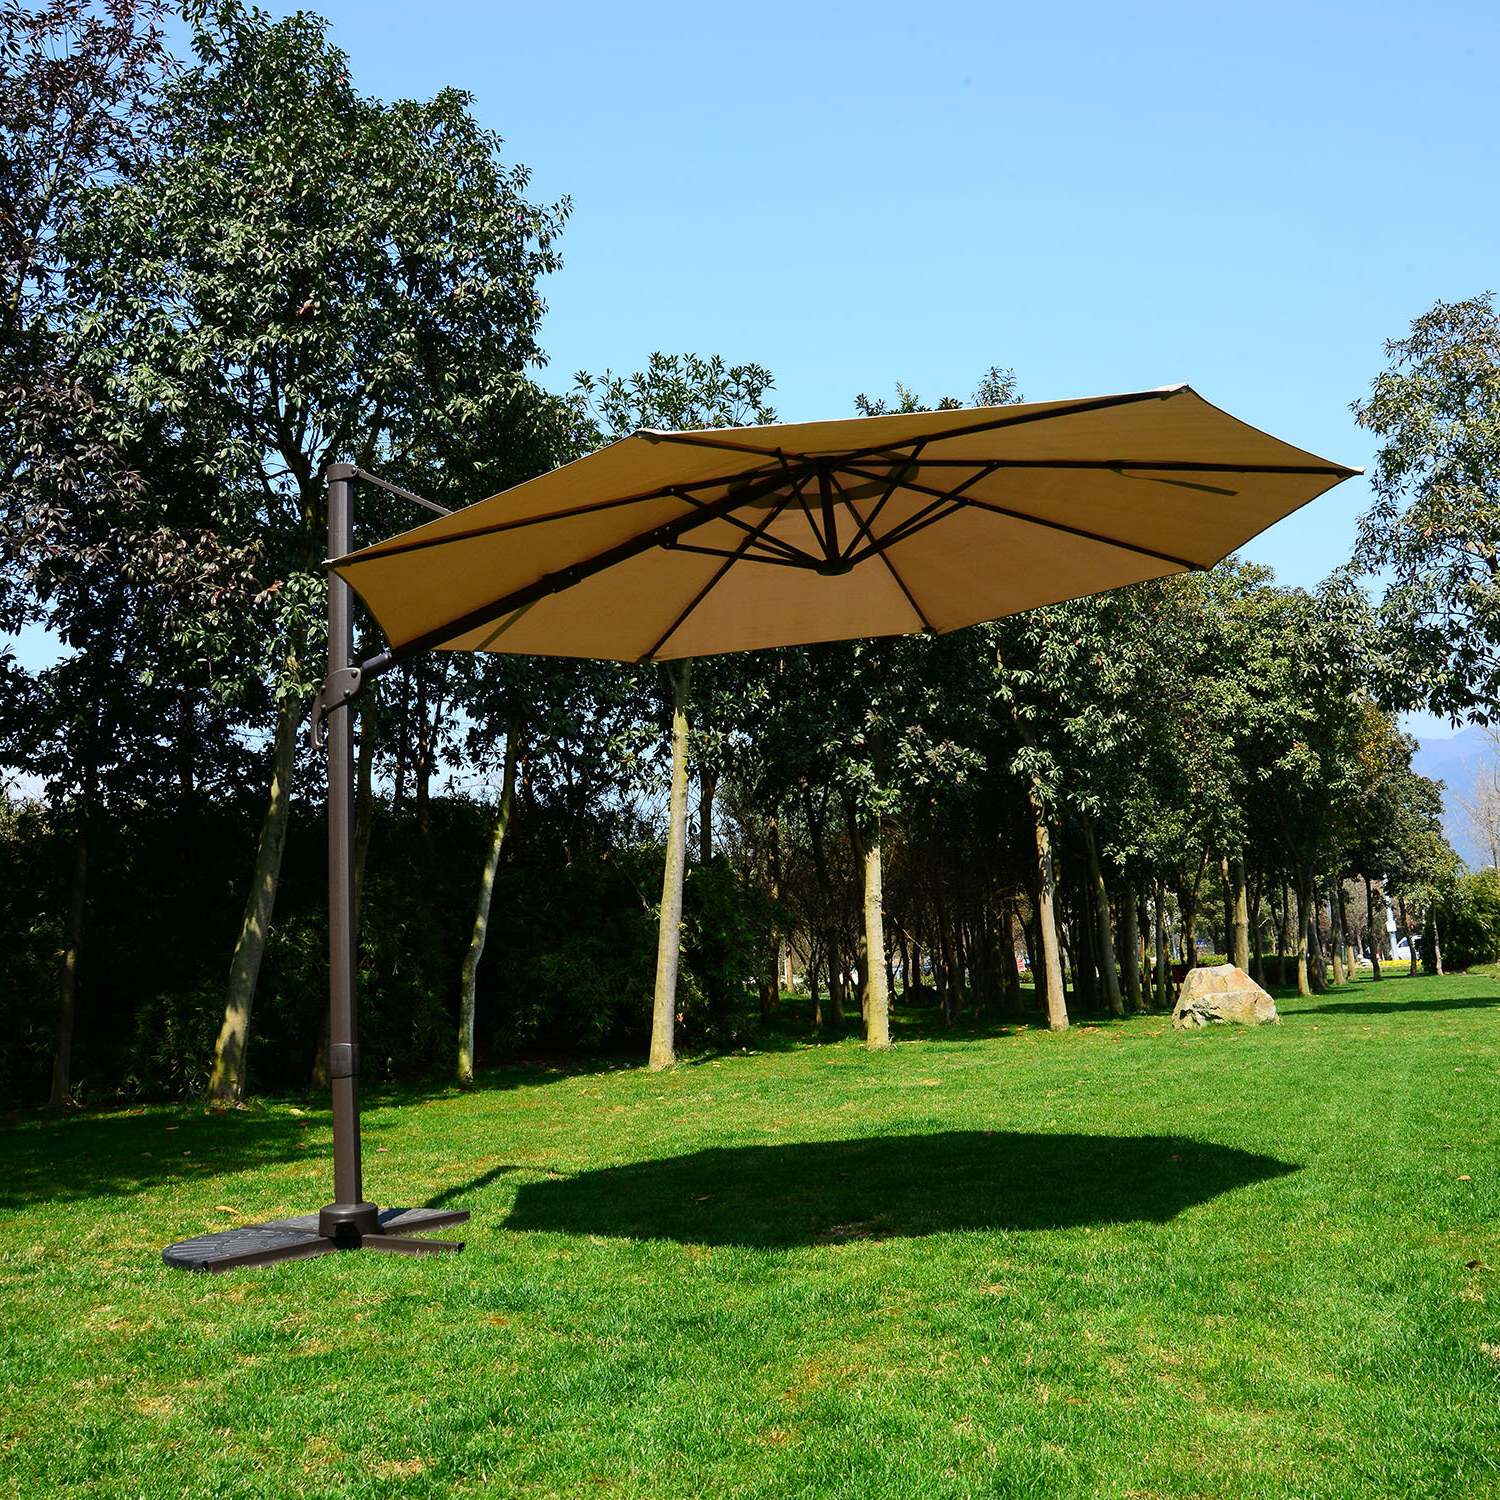 Tallulah Sunshade Hanging Outdoor Cantilever Umbrellas Regarding Well Known 10' Cantilever Umbrella (View 15 of 20)